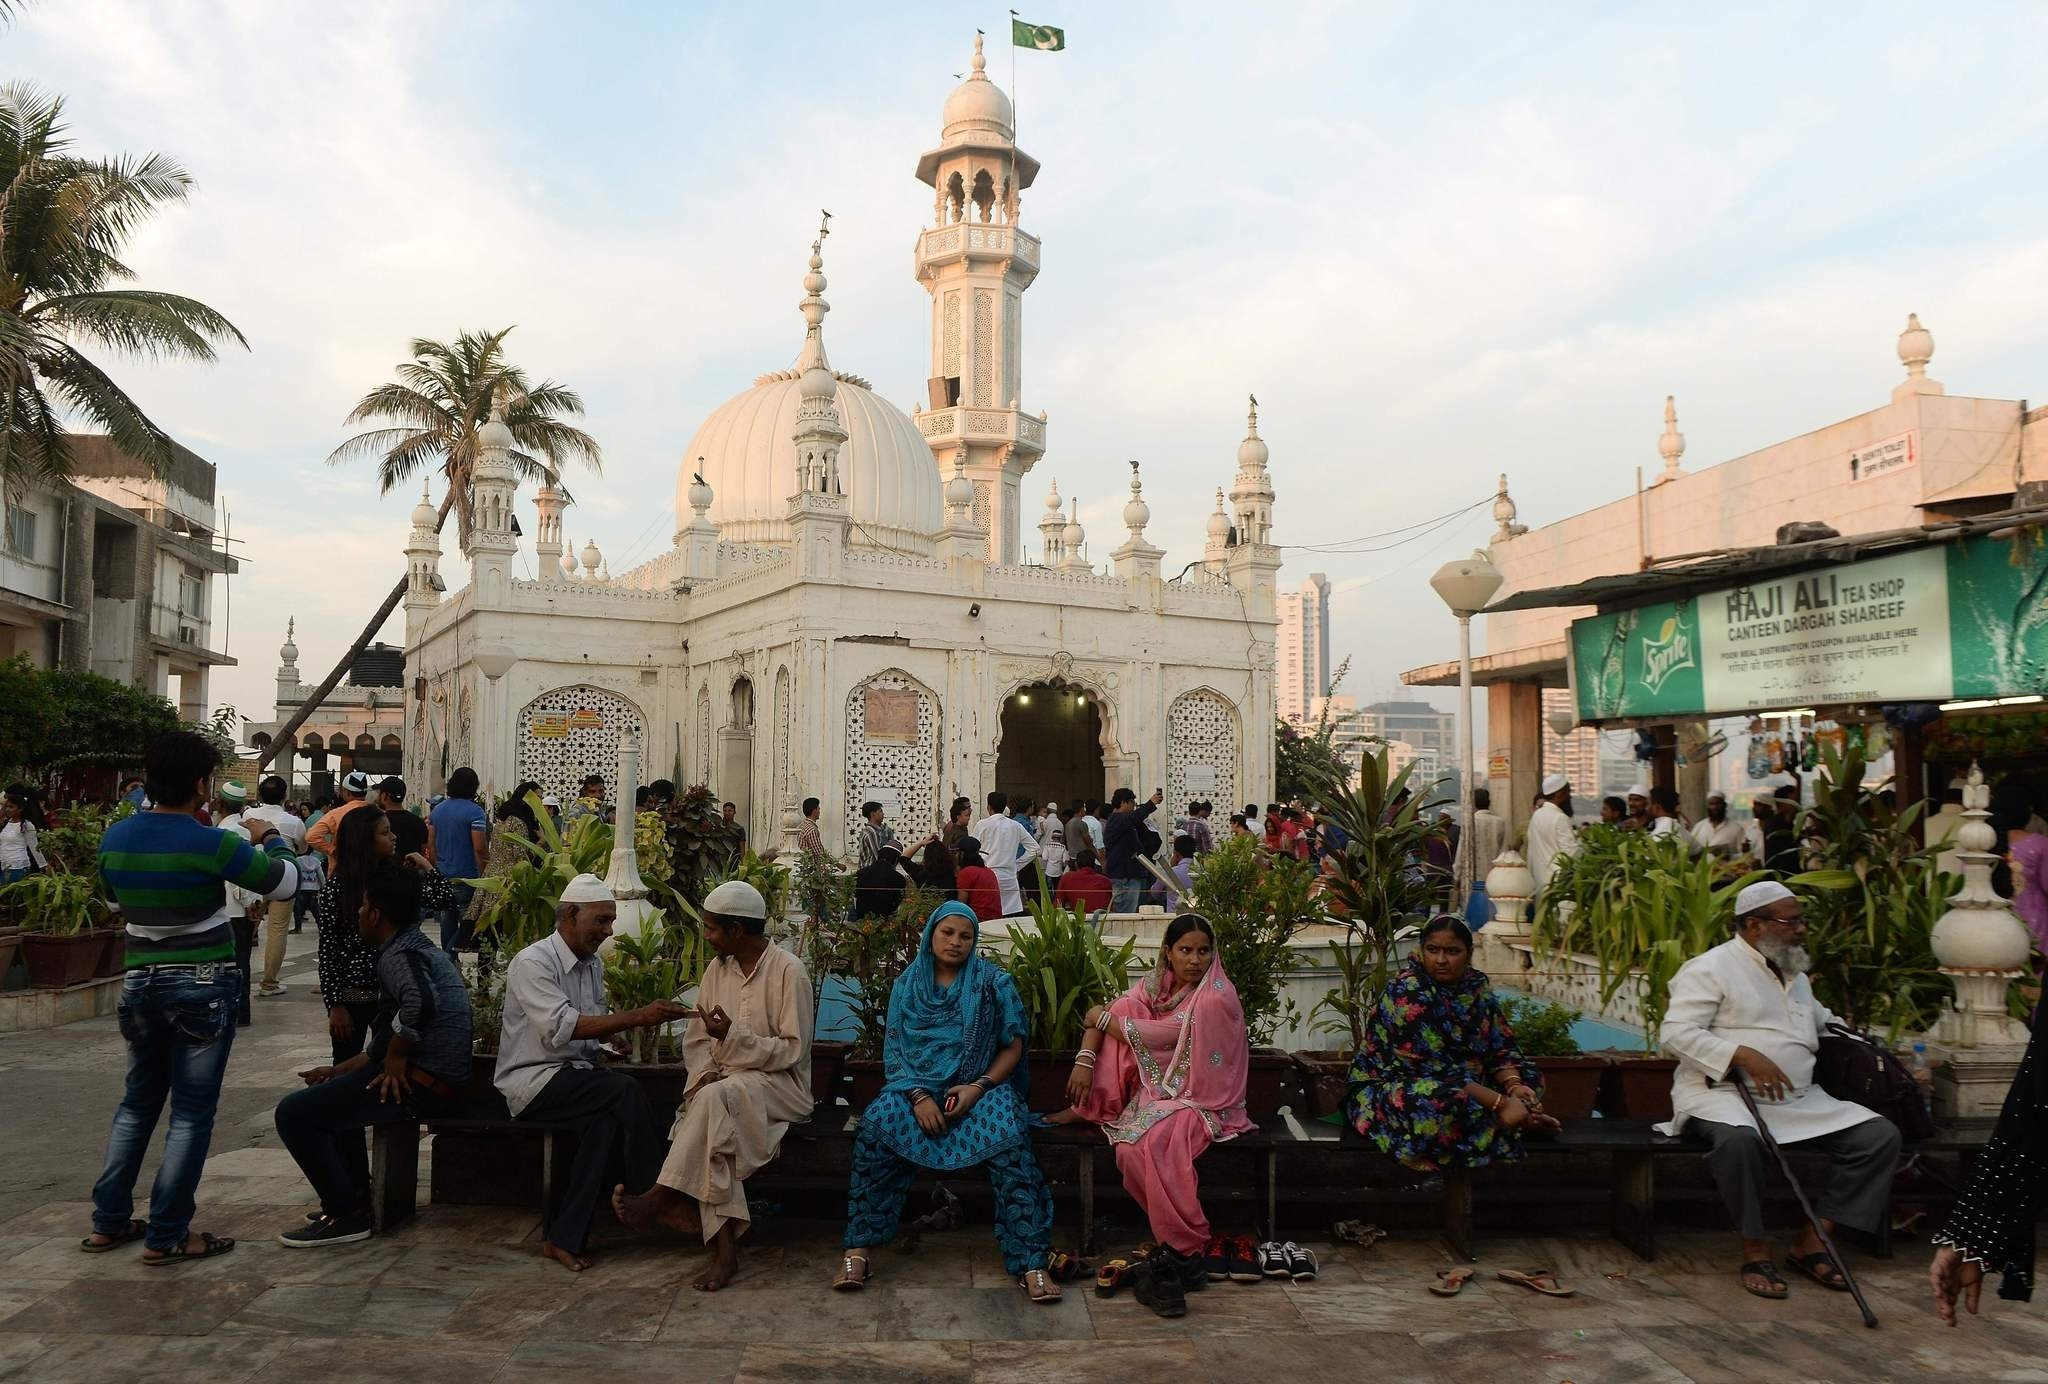 In this photograph taken on December 9, 2015, Indian Muslims and visitors are seen at the Haji Ali Dargah in Mumbai. (AFP Photo)